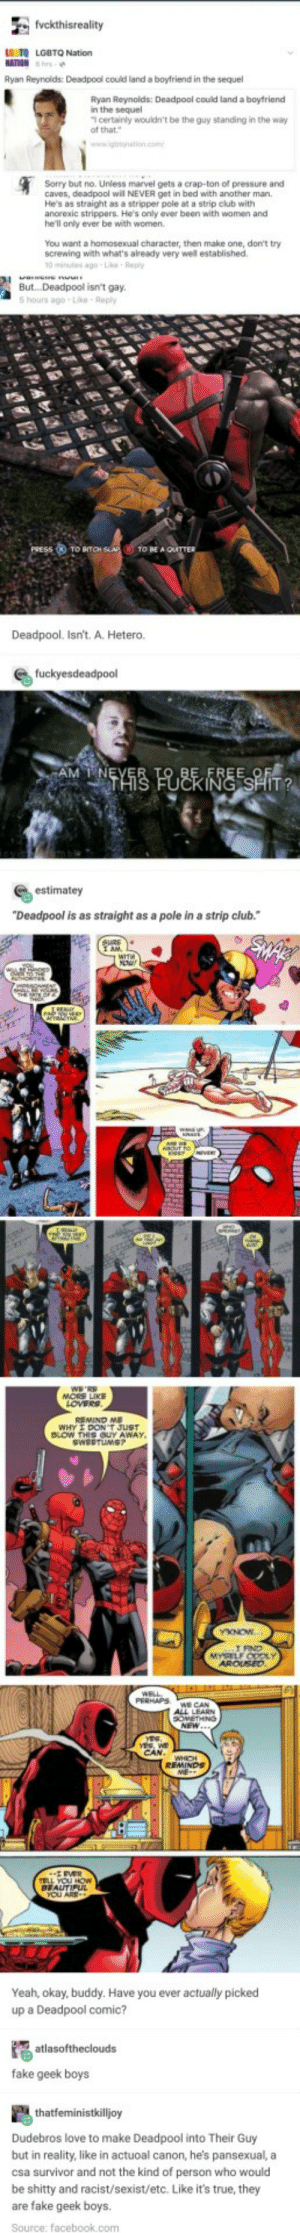 """Press (X) to Bitch Slap!: LS TO LGBTQ Nation  Ryan Reynolds Deadpool could land a boyfriend in the sequel  Ryan Reynolds: Deadpool could land a boytriend  n the sequel  certainly wouldn't be the guy standing in the way  Sorry but no. Unless marvel gets a crap-ton of pressure and  caves, deadpool will NEVER get in bed with anather man.  He's as straight as a stripper pole at a strip club with  ancrexic strippers. He's only ever been with women and  he'll only ever be with women  You want a homosexual character, then make one, don't try  screwing with what's abready very well established  0 minutes ago-Le Reply  Bu...Deadpool isn't gay  5 hours ago-Lke Reply  Deadpool. Isn't. A. Hetero.  estimatey  """"Deadpool is as straight as a pole in a strip club.  Yeah, okay, buddy. Have you ever actually picked  up a Deadpool comic?  fake geek boys  Dudebros love to make Deadpool into Their Guy  but in reality, like in actuoal canon, he's pansexual, a  csa survivor and not the kind of person who would  be shitty and racist/sexist/etc. Like it's true, they  are fake geek boys.  Source: facebook.com Press (X) to Bitch Slap!"""